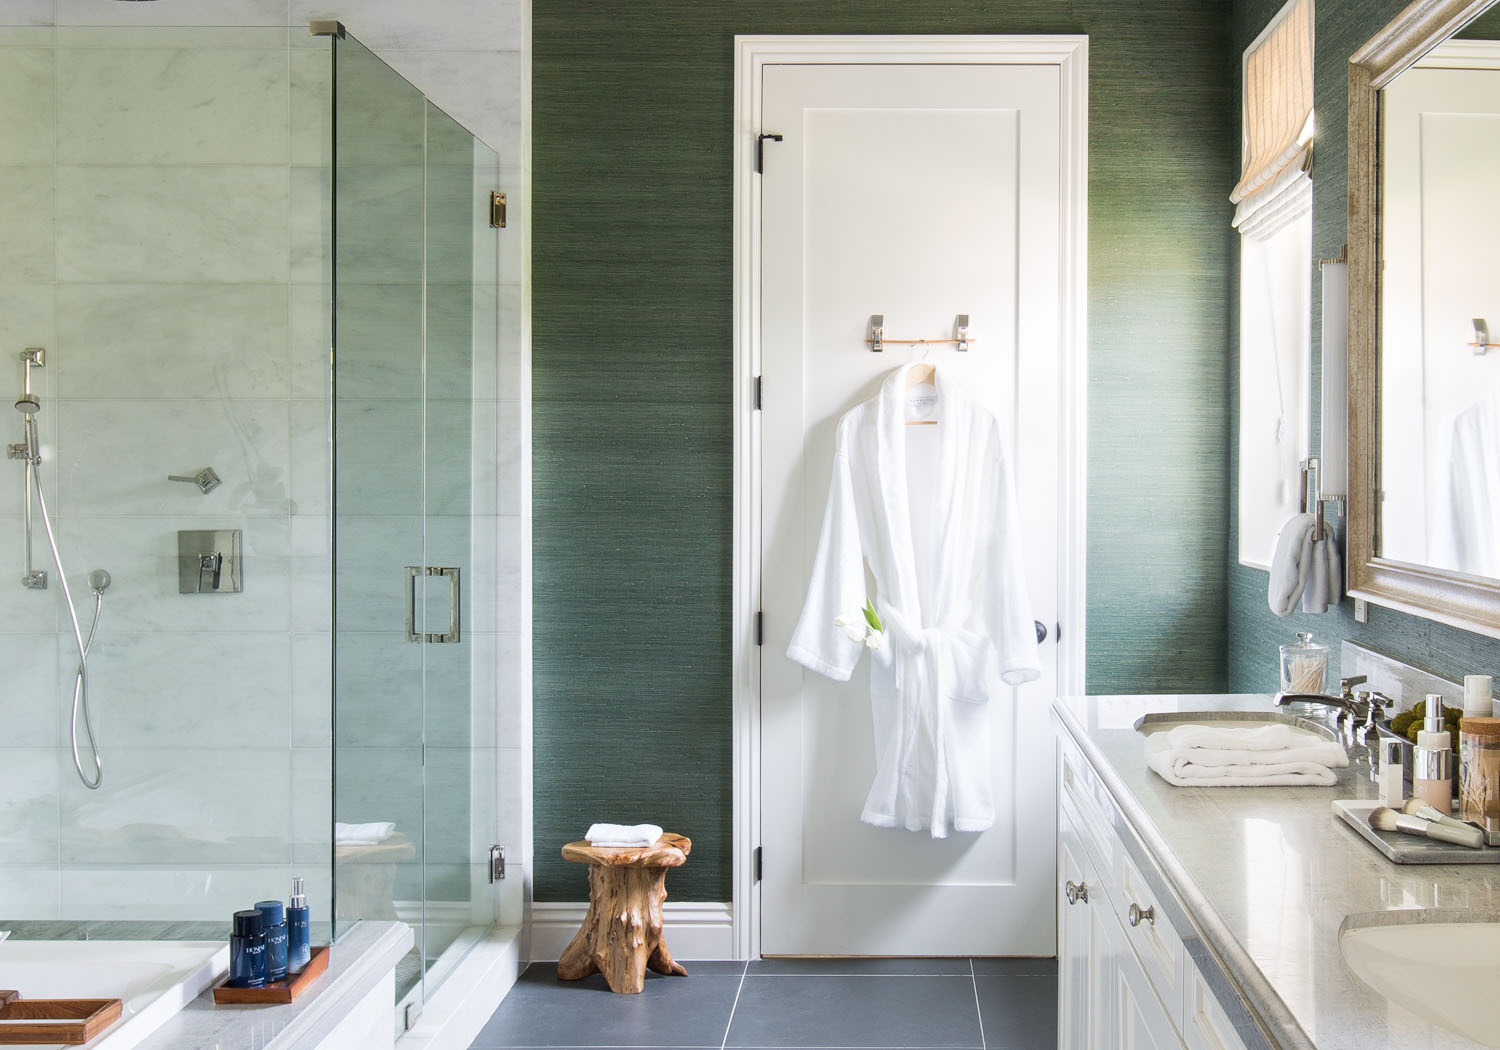 In this serene, modern bathroom with rich jade walls and white and wooden elements, you can relax your mind and body with ease.